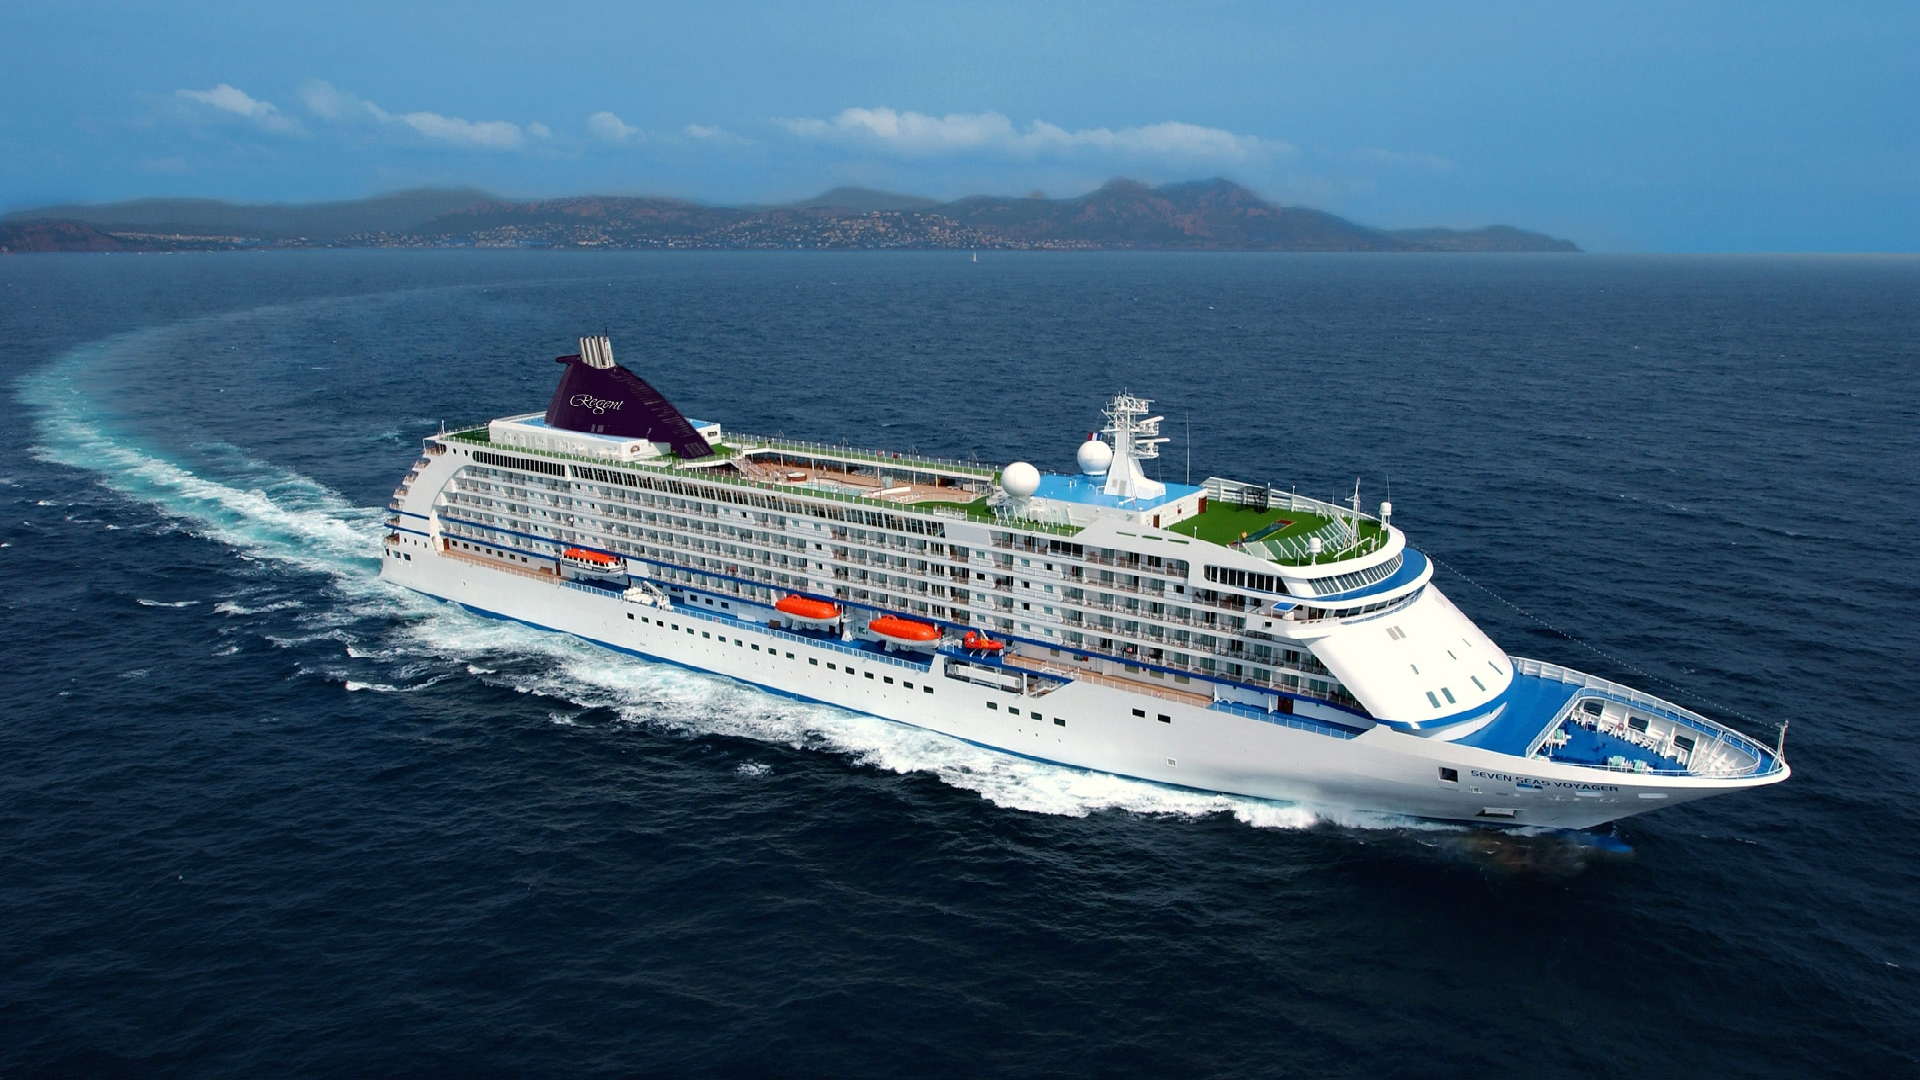 Cruise Ship High Quality Wallpapers HD Desktop Wallpapers 1920x1080